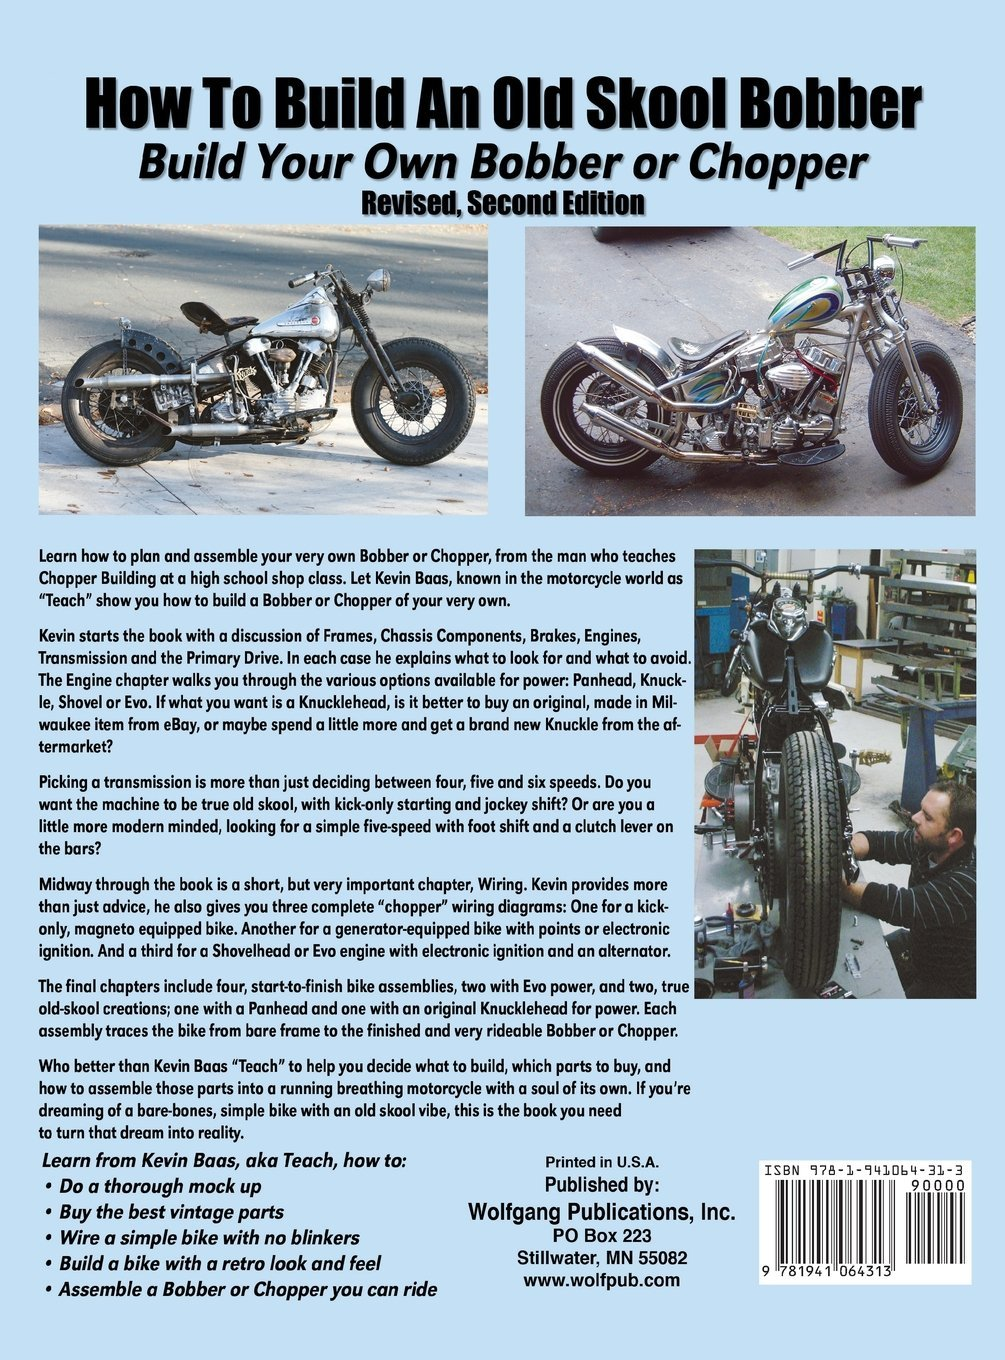 How To Build An Old Skool Bobber Your Own Or Chopper 74 Shovelhead Wiring Diagram Schematics Diagrams Kevin Baas 9781941064313 Books